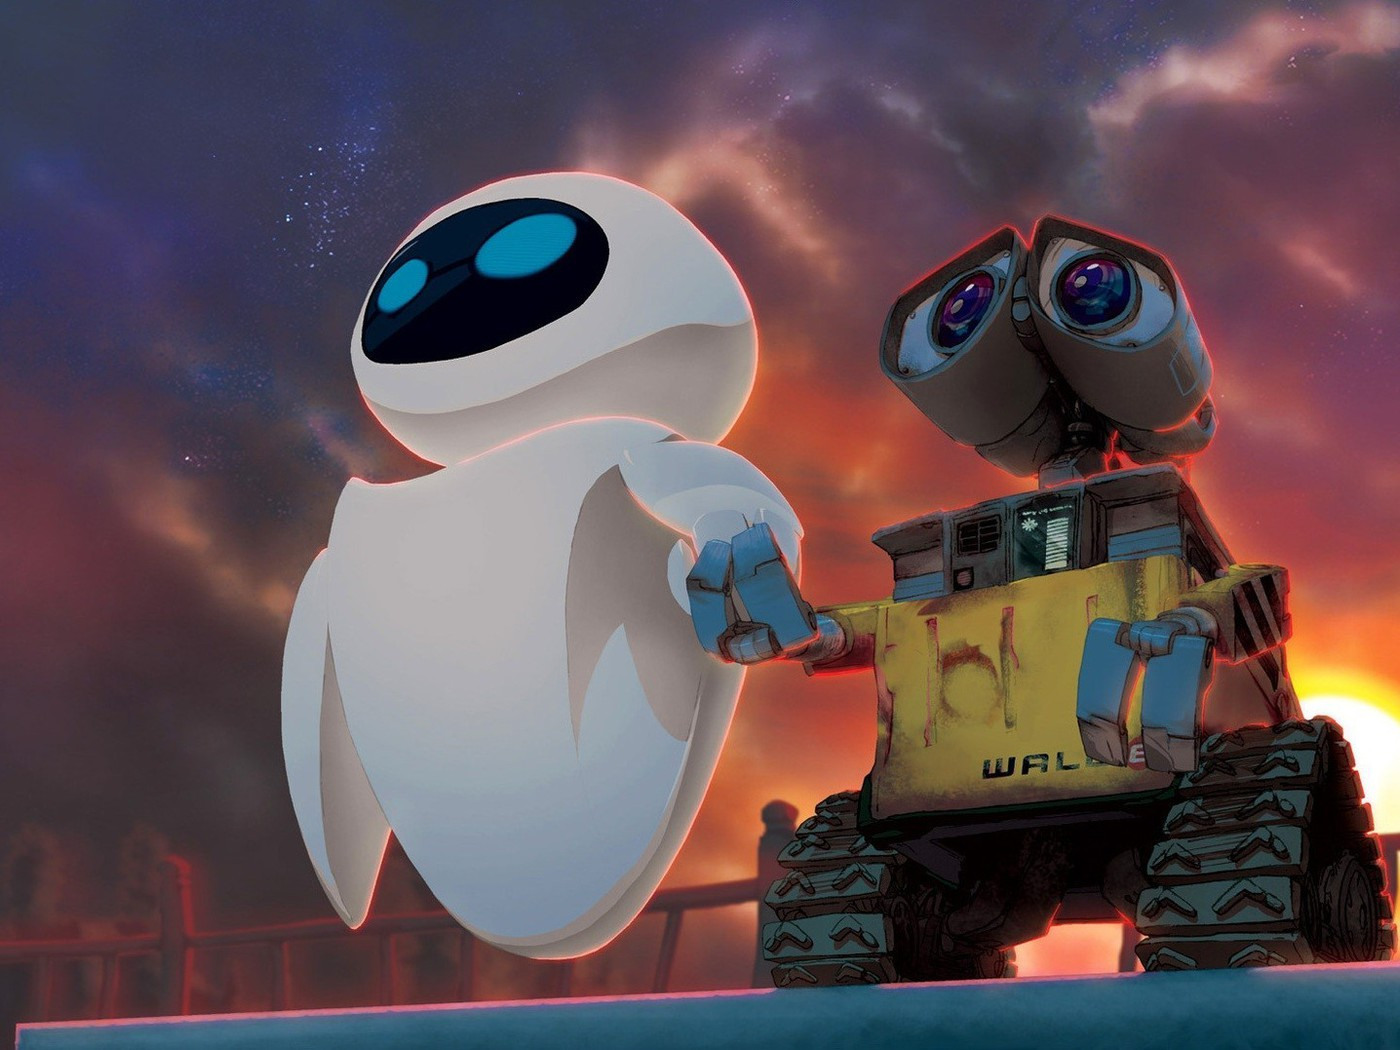 Iphone 4 Animated Wallpaper Abstract Wall E Wallpaper Allwallpaper In 14535 Pc En